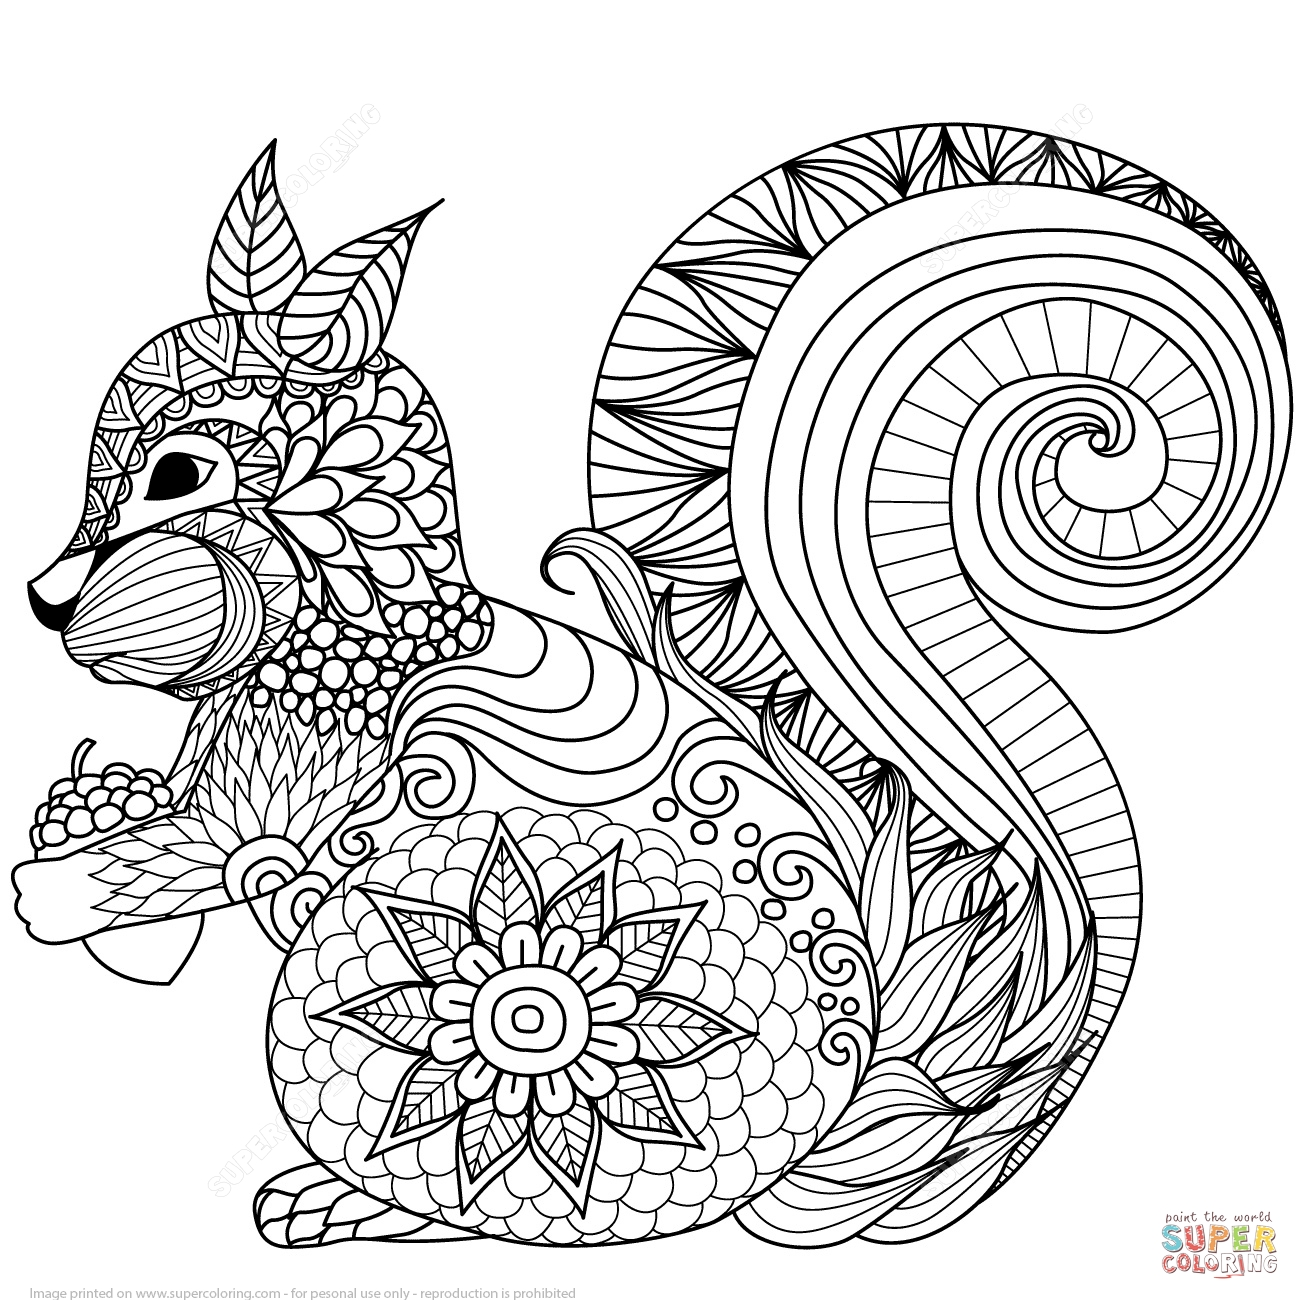 zen art coloring pages zen antistress abstract pattern inspired anti stress art zen pages coloring